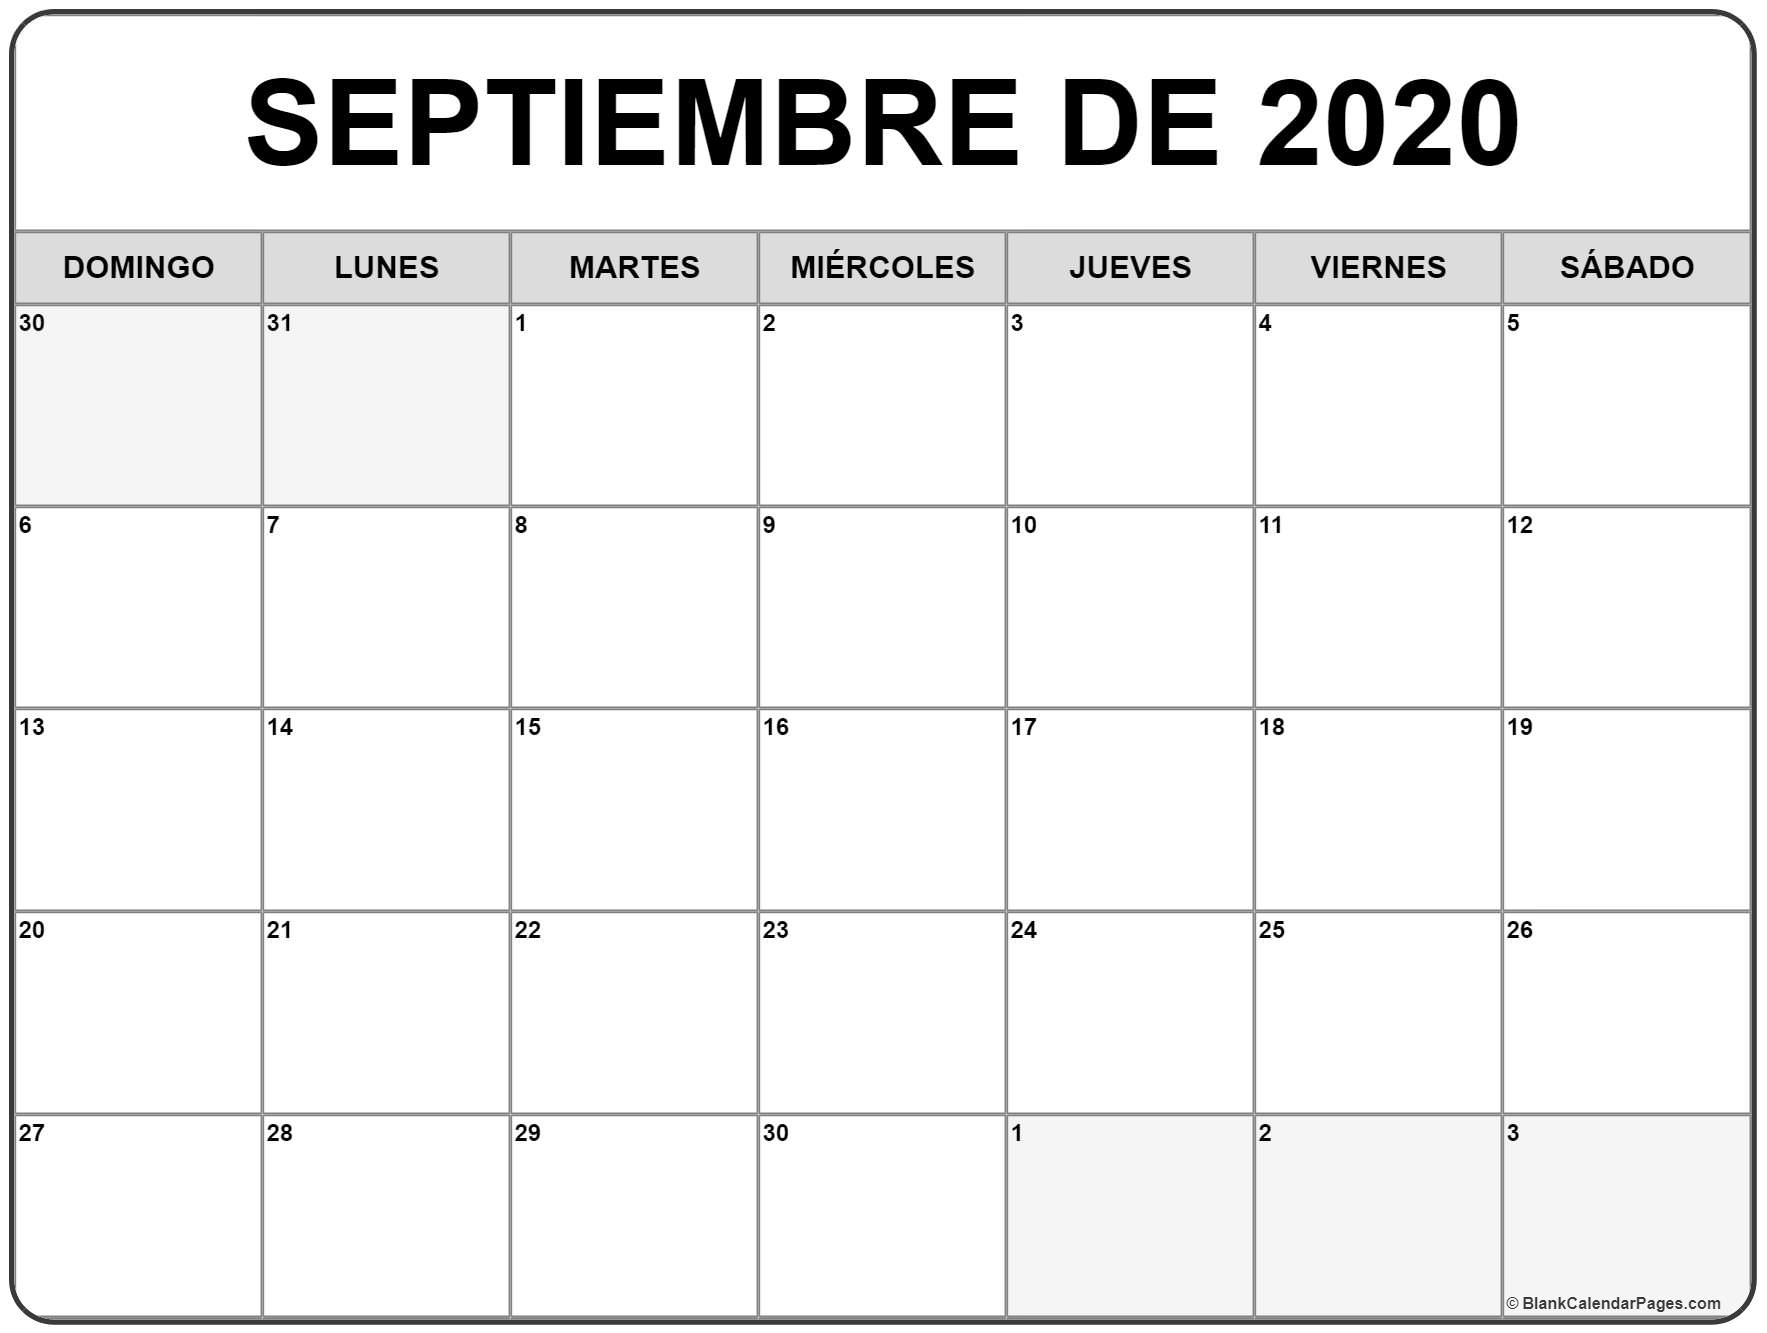 Calendario De Septiembre 2020  Yatay.horizonconsulting.co with regard to Calendario Zbinden 2020